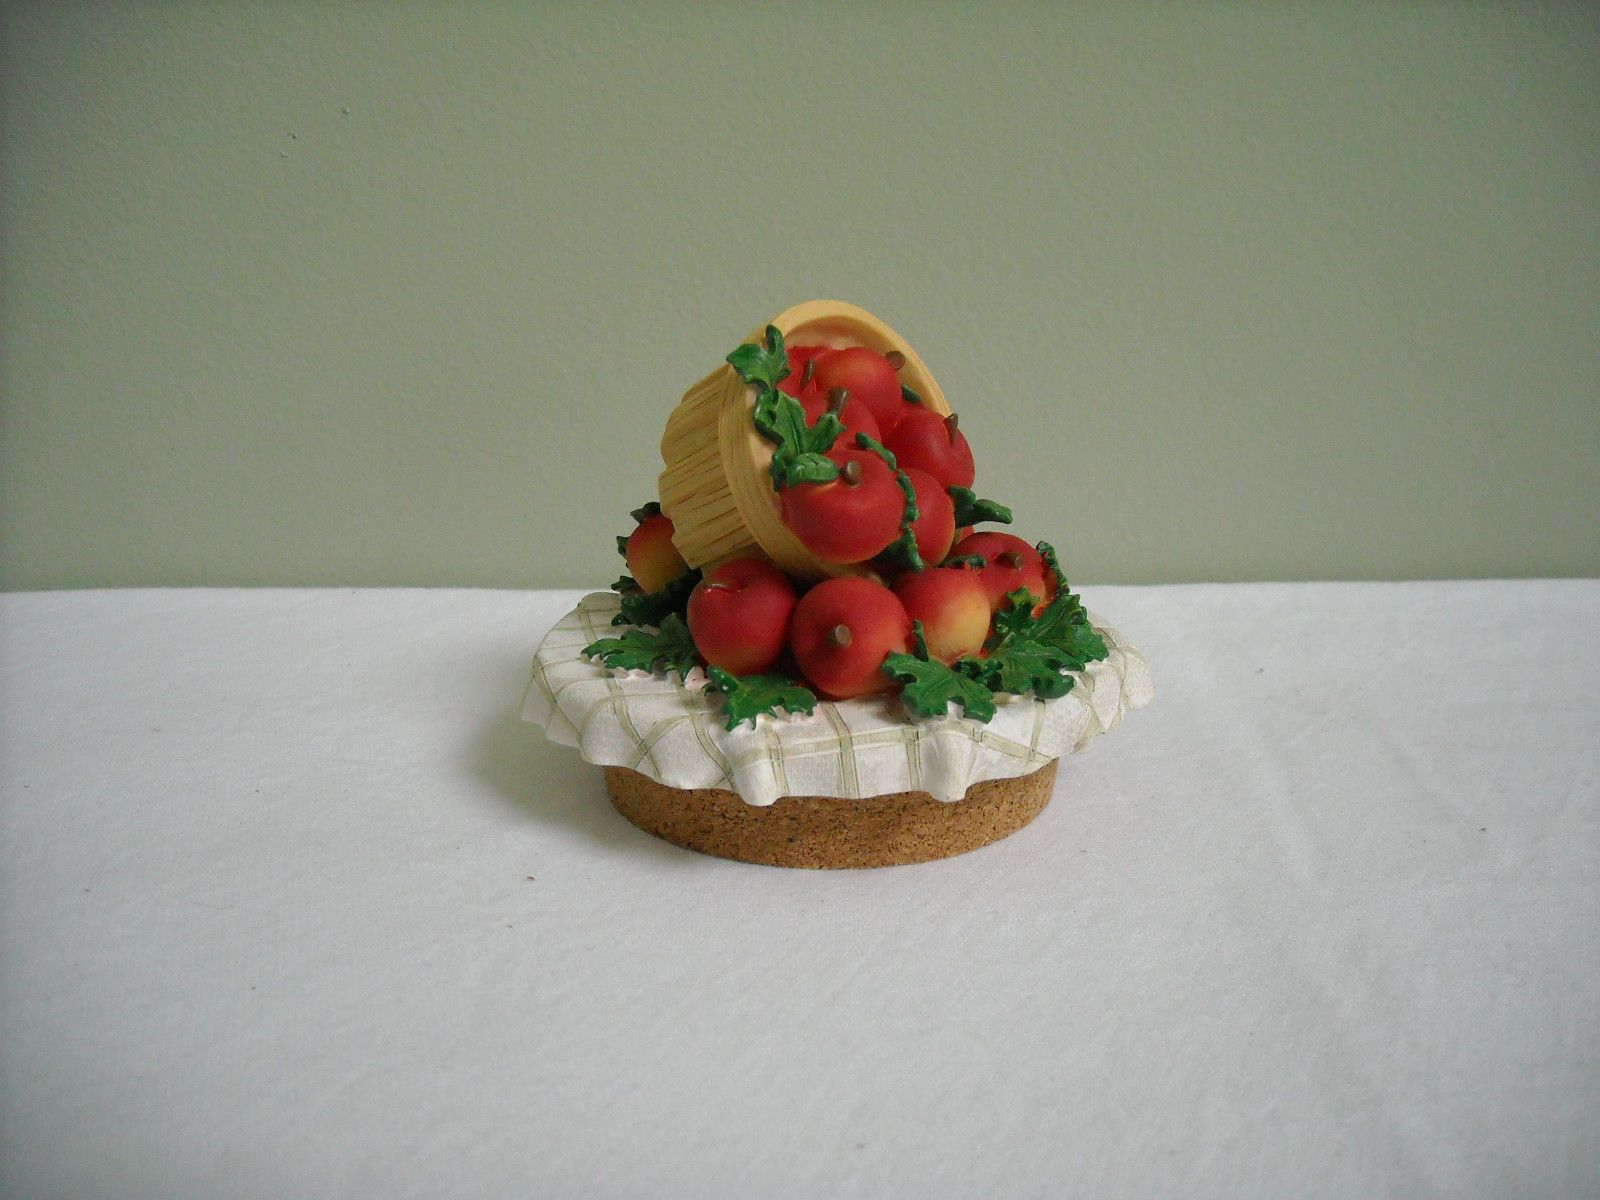 Homco Home Interiors Apple Basket Candle Jar Topper Accent Lid | eBay